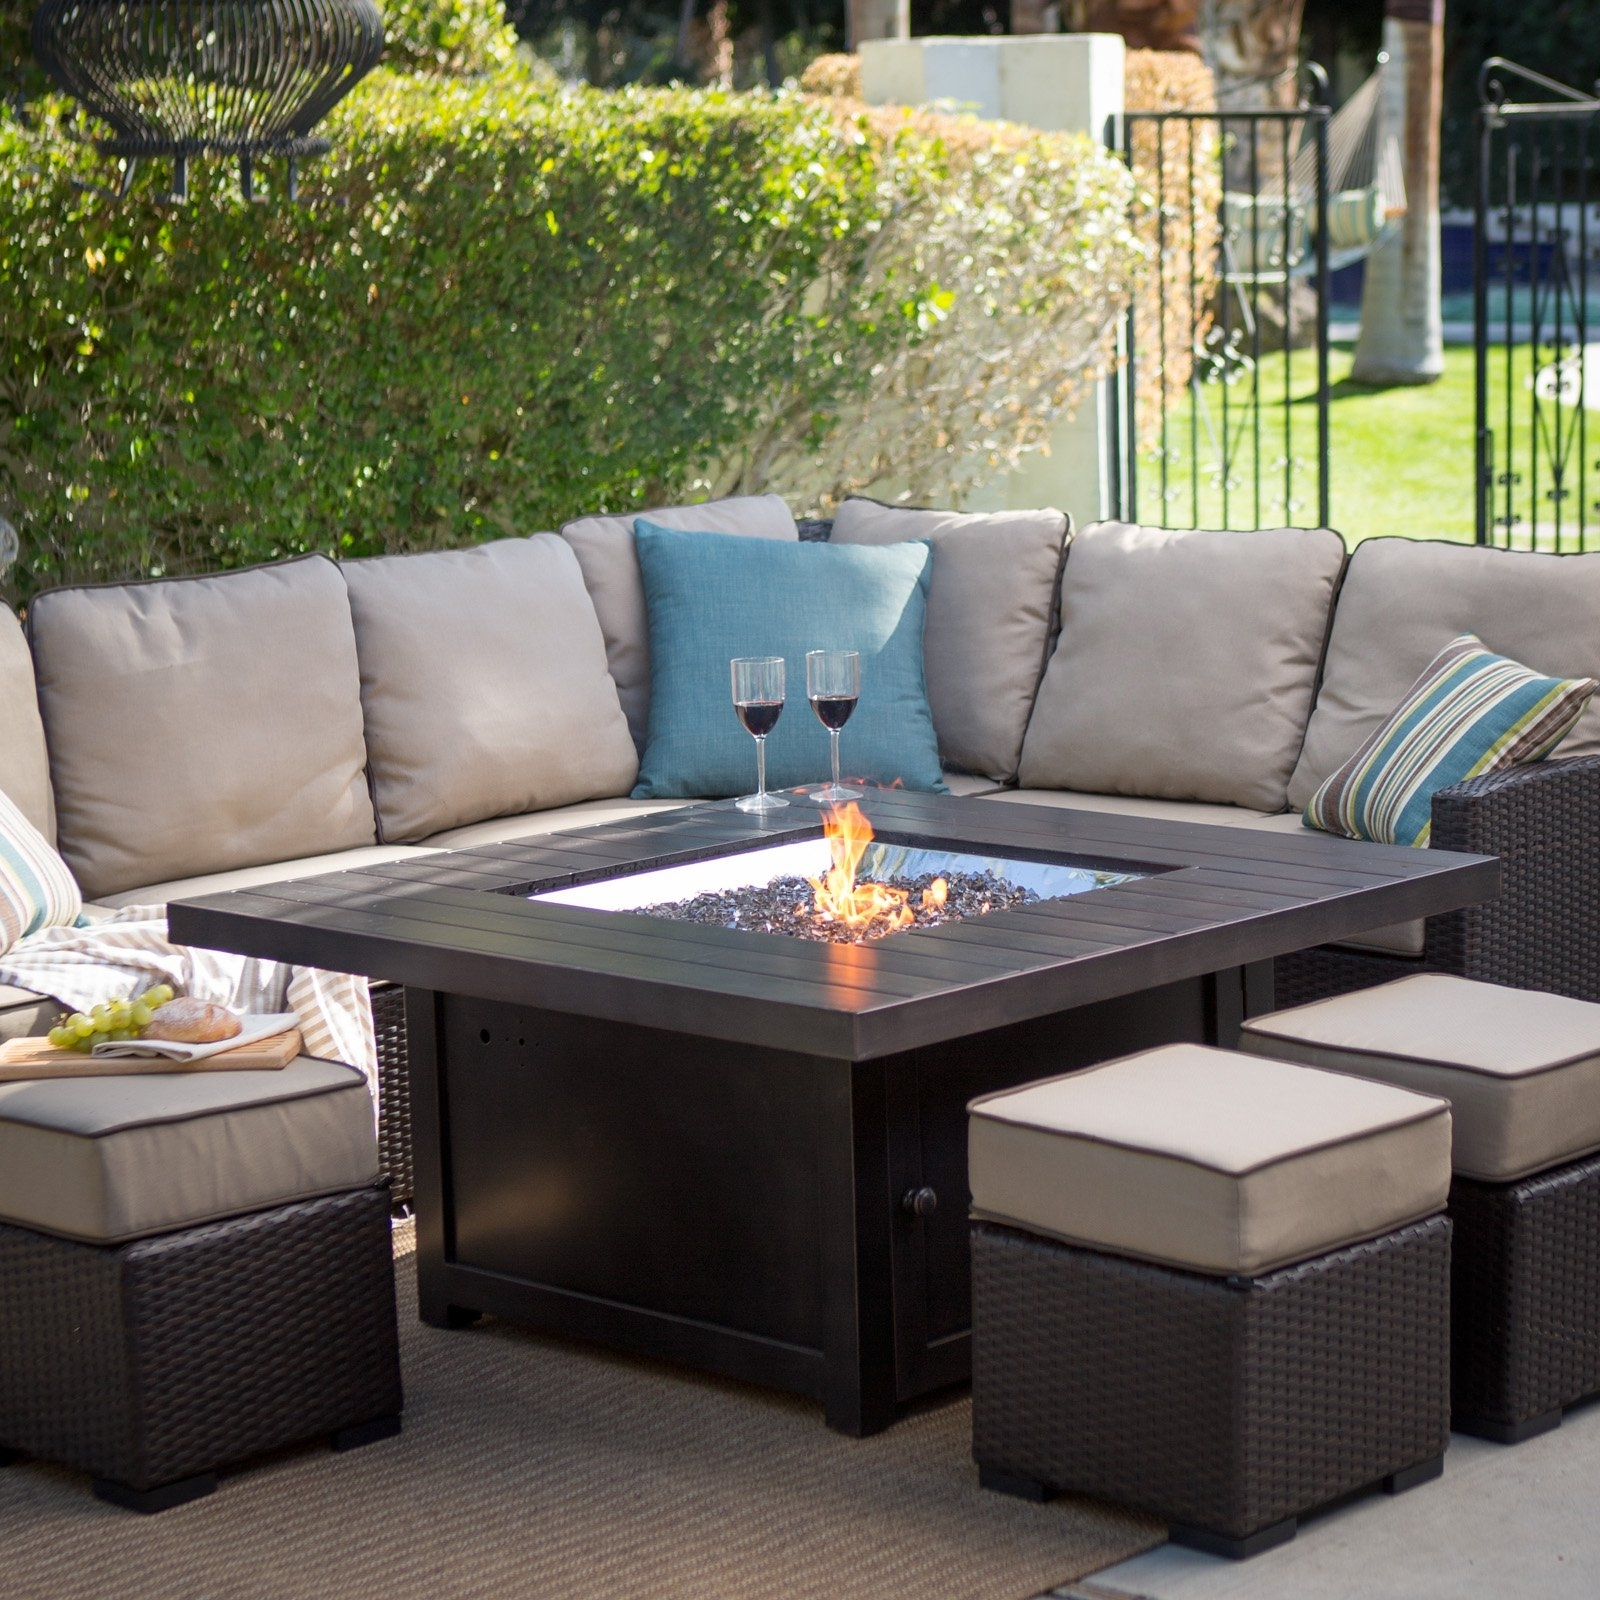 Patio Conversation Sets With Fire Table Pertaining To Most Current Furniture: High Quality Patio Furniture Columbus Ohio And Fire Pit (View 9 of 15)